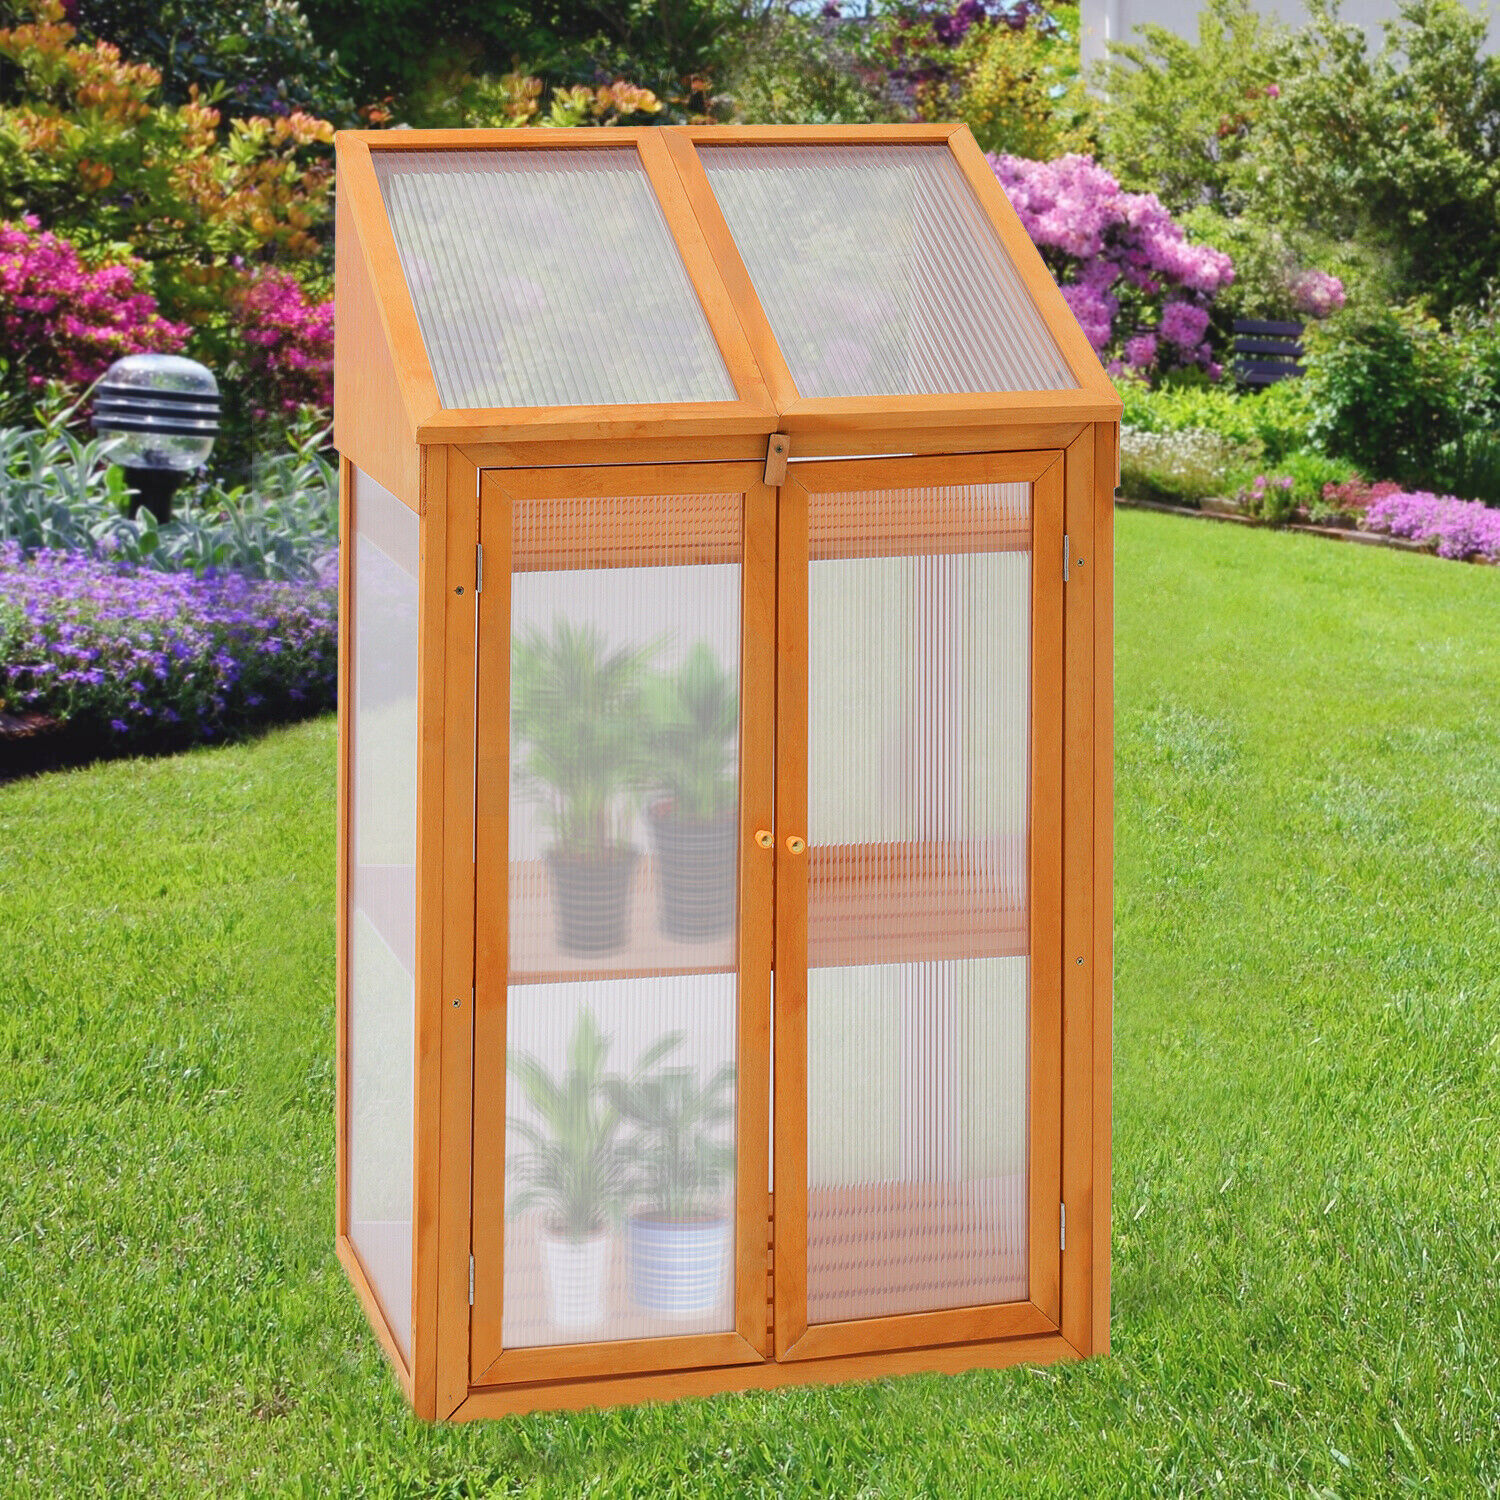 Clear Greenhouse Wood Cold Frame 3 Tier Flowers Plants Stand Growing Box Planter